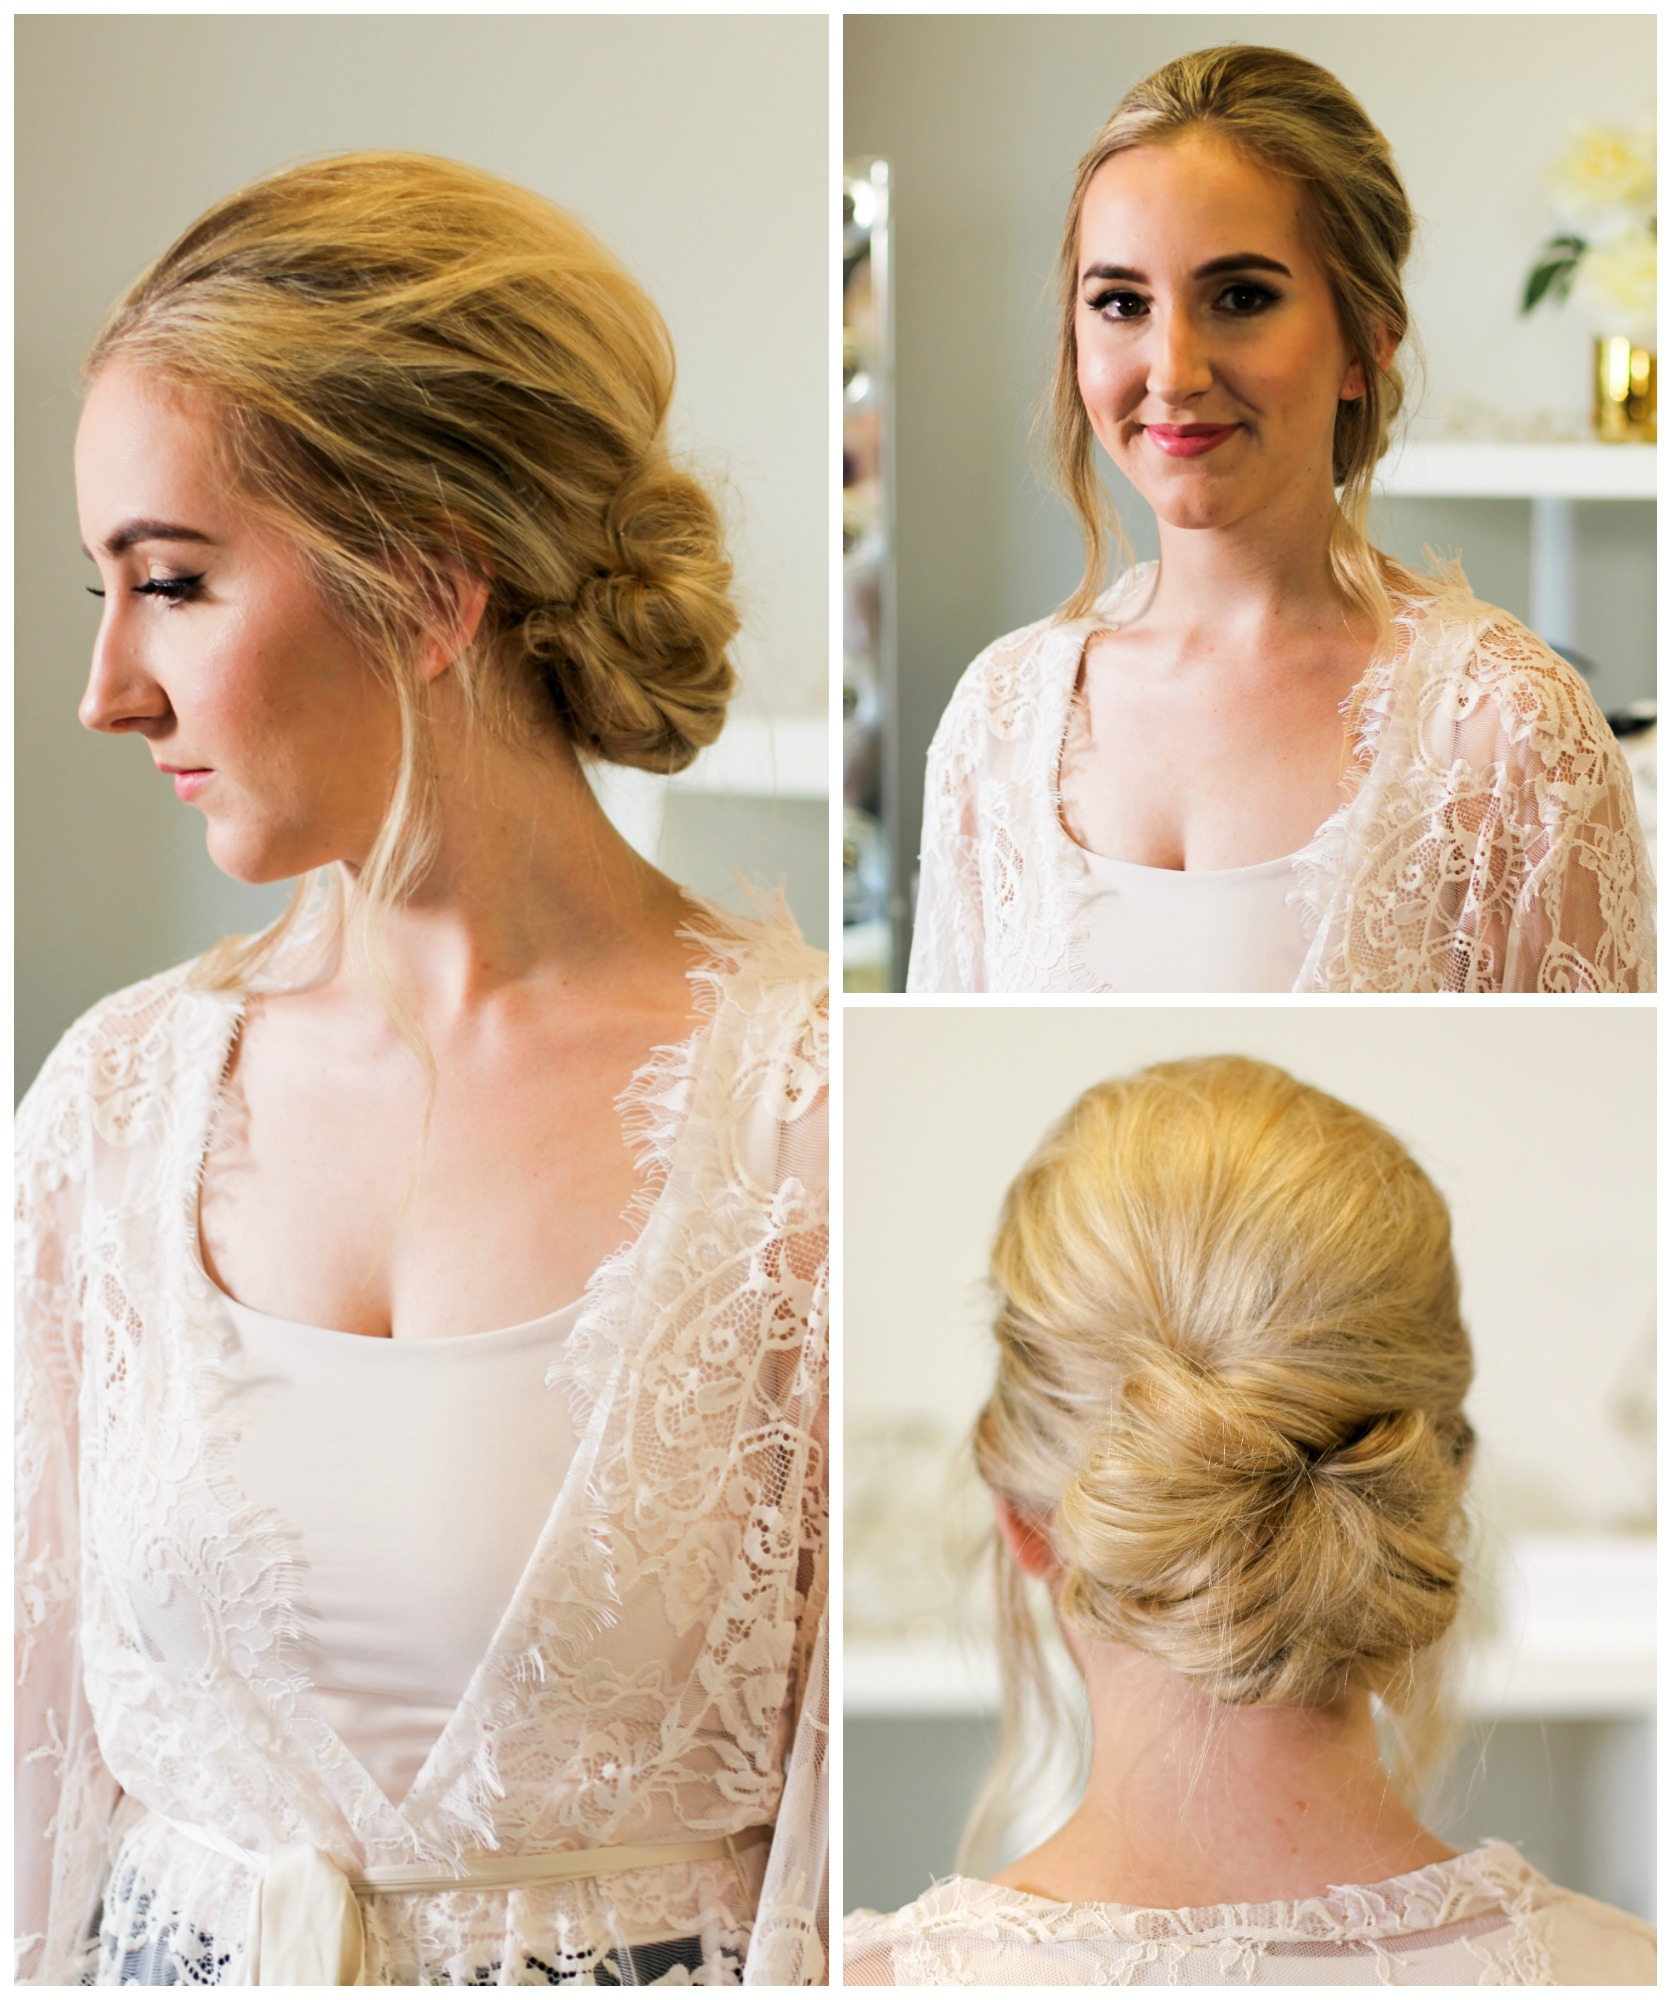 3 Bridal Beauty Looks with Ecotools - Lake Shore Lady